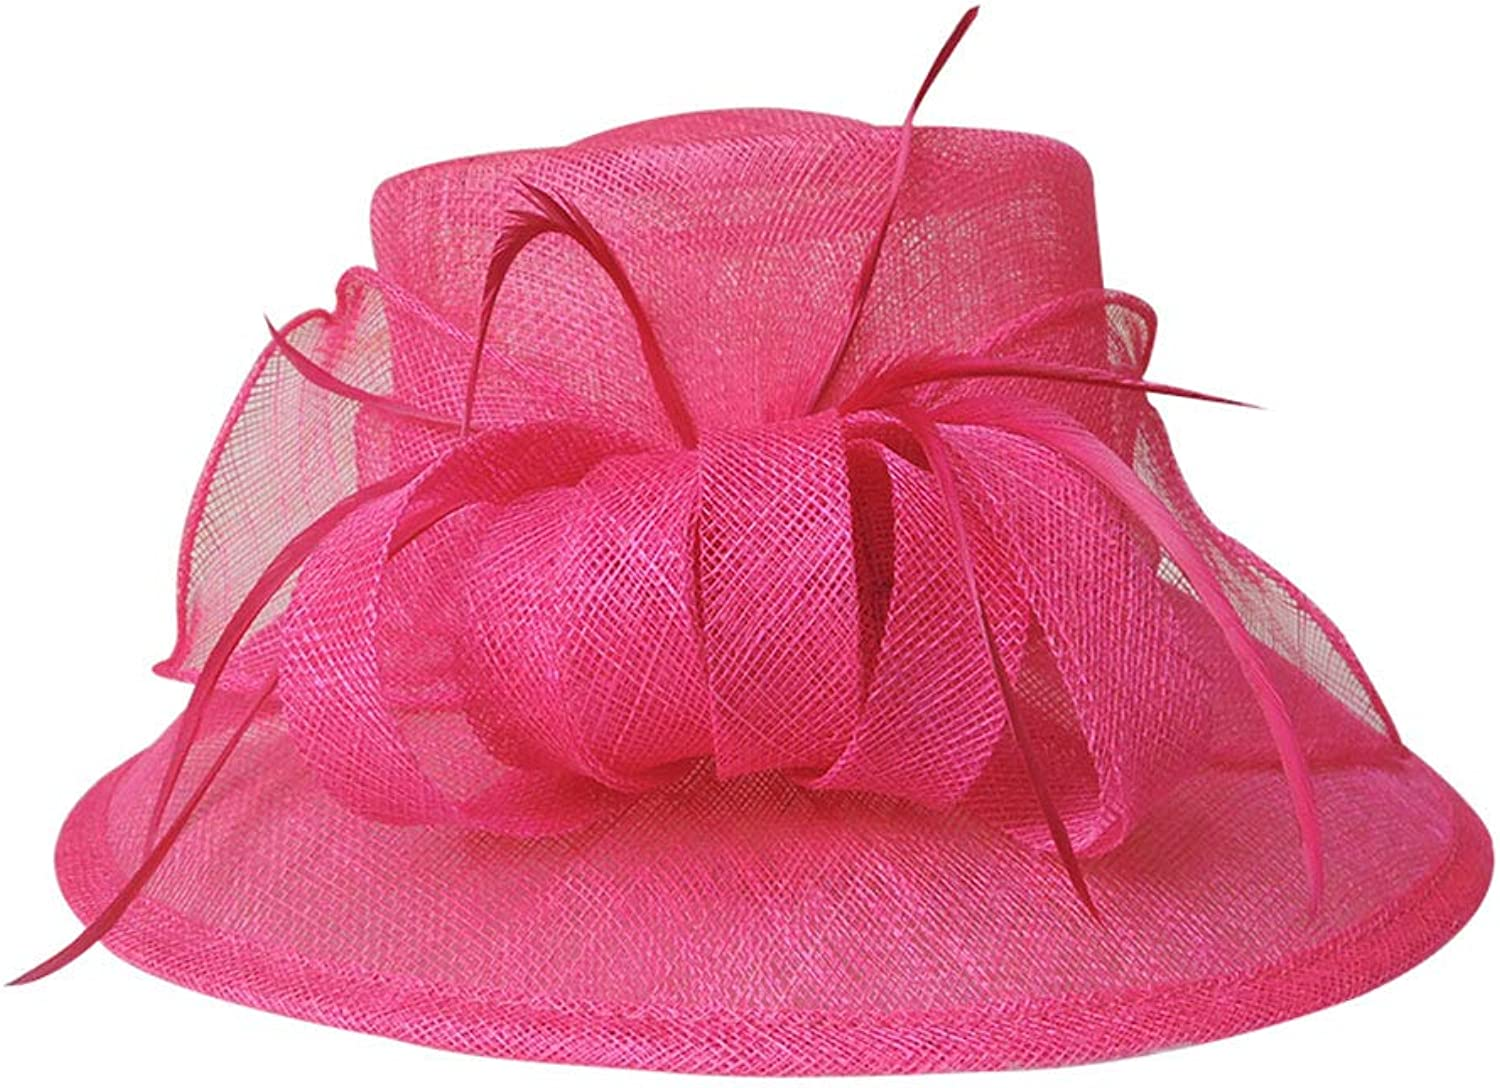 ZUOANCHEN Sun Hat Summer Female Hat Rolled Edge Flower Big Eave Hat Brim Hat in The Summer Hats Tea Party Wedding Dress Cap (color   Pink)